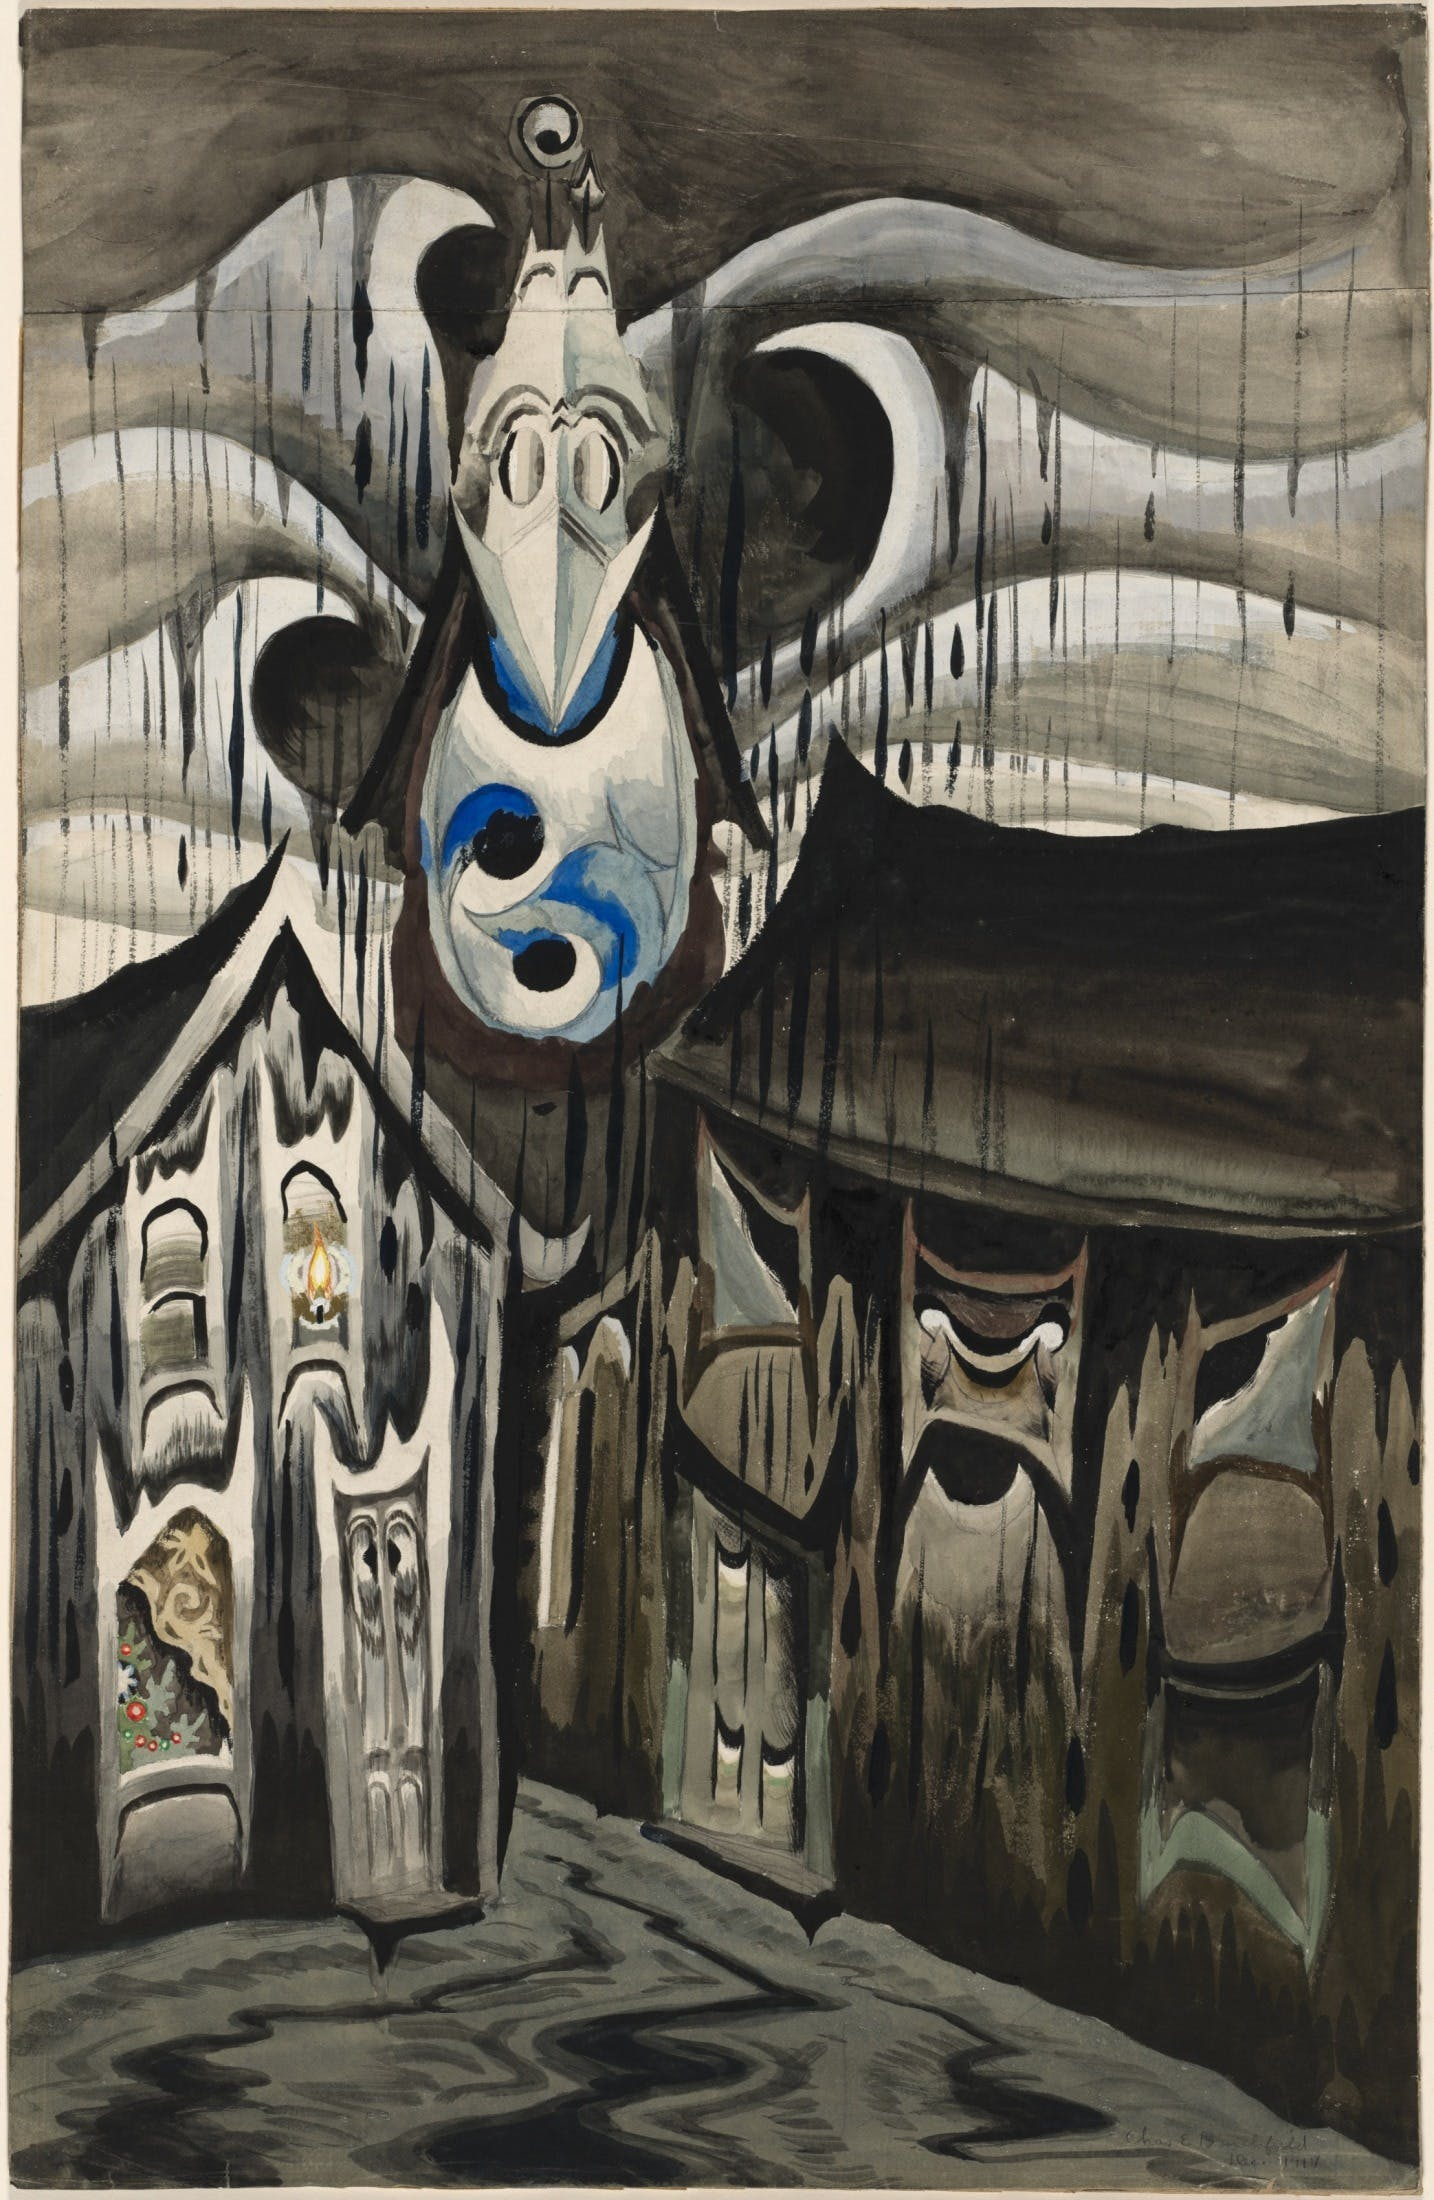 Bells Ringing, Rainy Winter Night, Charles Burchfield